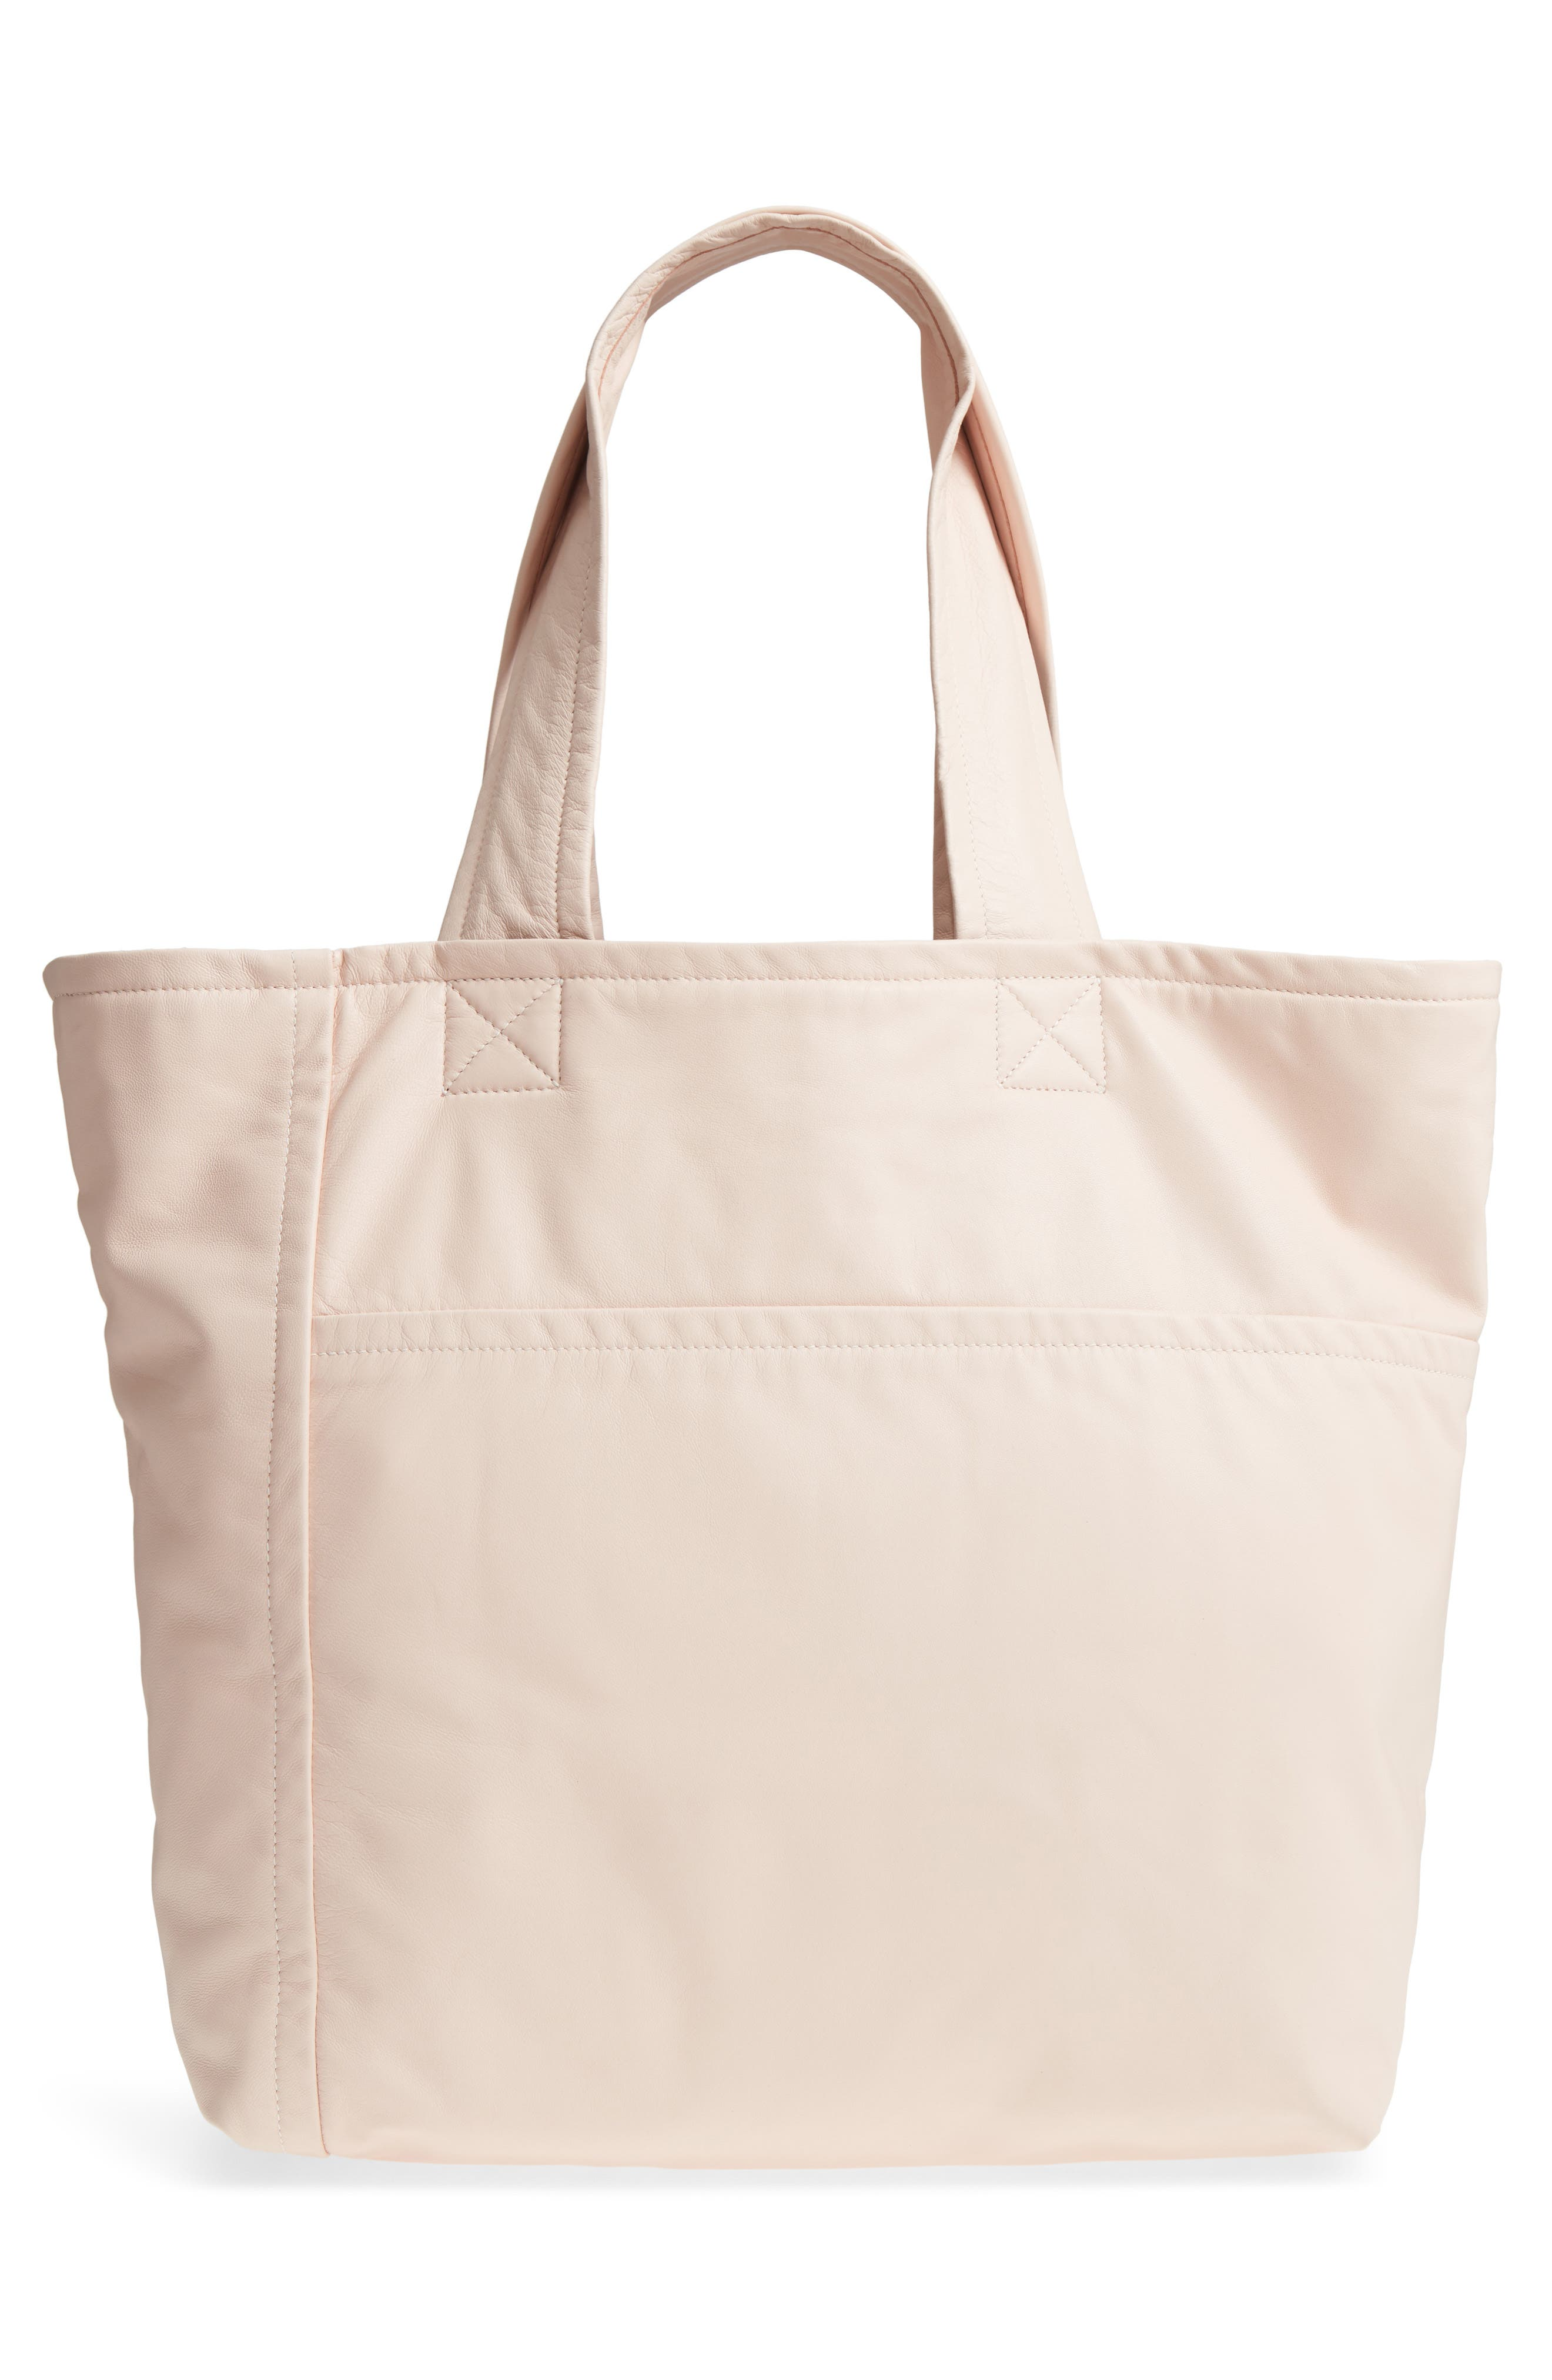 Sunday Tote,                             Alternate thumbnail 3, color,                             950